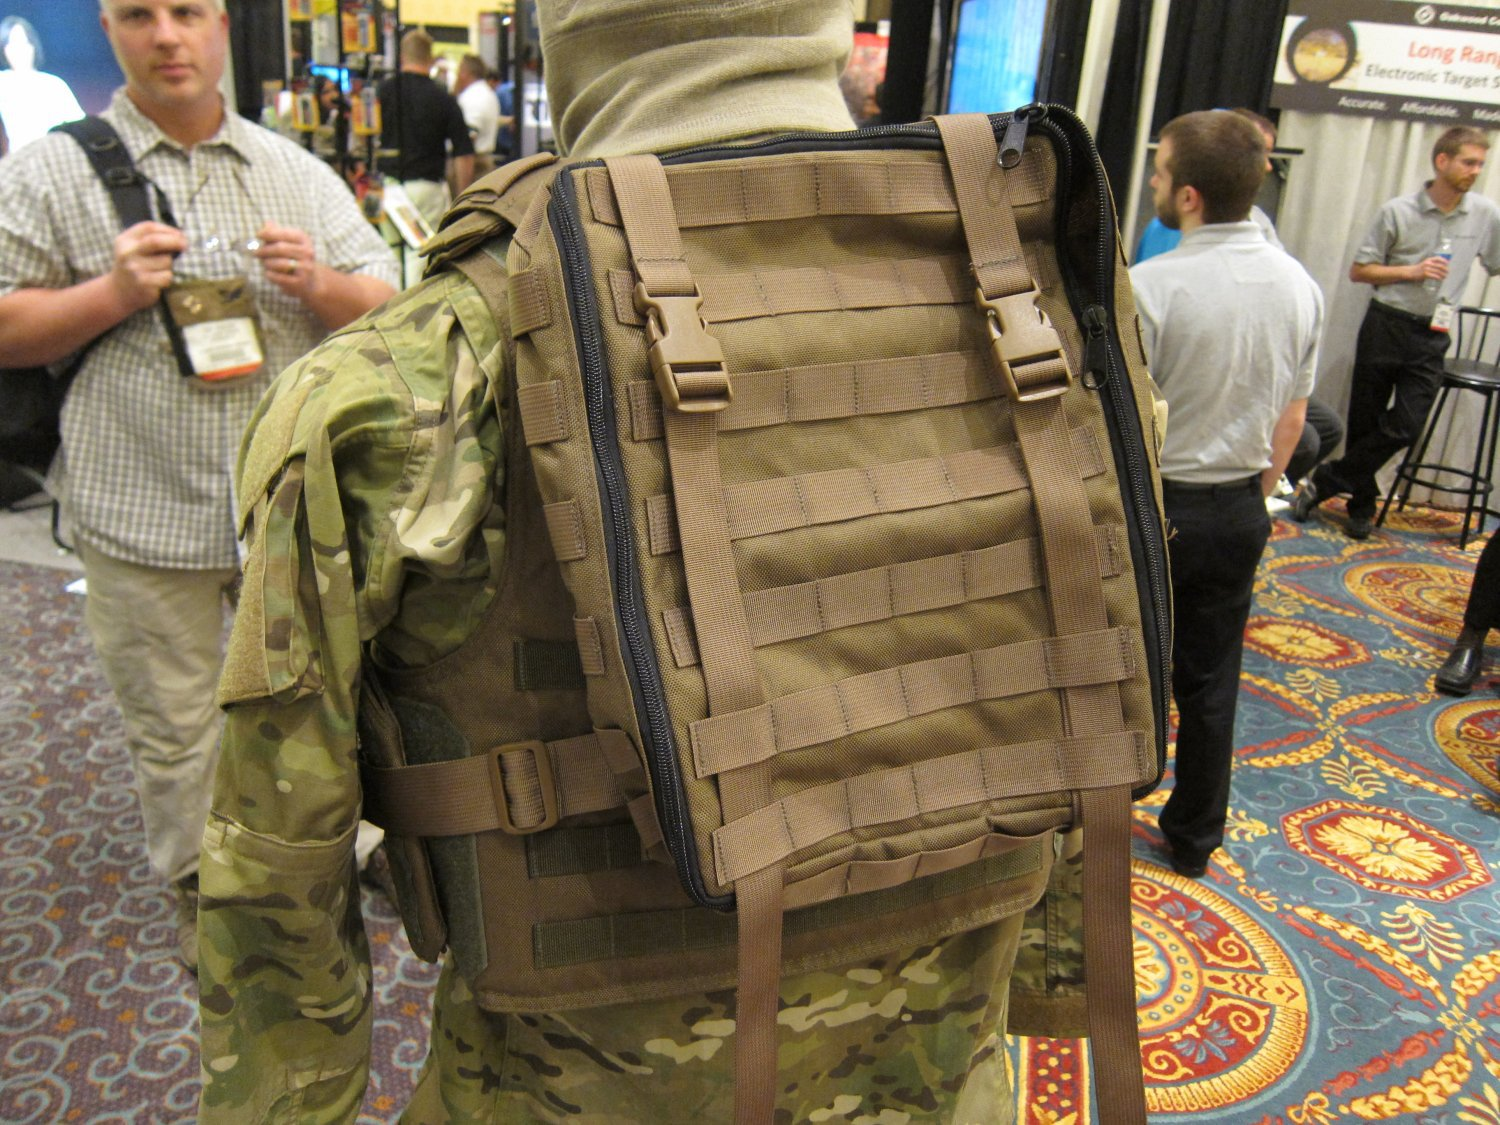 P2 Systems P2Sys Centurion Armour Maniple I Body Armor Carrier Tactical Vest with Integra Pack at SHOT Show 2011 3 <!  :en  >Hardpoint Equipment Tactical Armor Carriers (formerly Personal Protective Systems, or P2 Systems): Best Tactical Body Armor Plate Carriers on the Planet? DR Looks at the Latest Hard Point Hard Armor Plate Carriers, Battle Belt, MOLLE Backpack System, and Passive Ventilation Channels/Removable Padding System at SHOT Show 2011 (Photos and Video!) <!  :  >